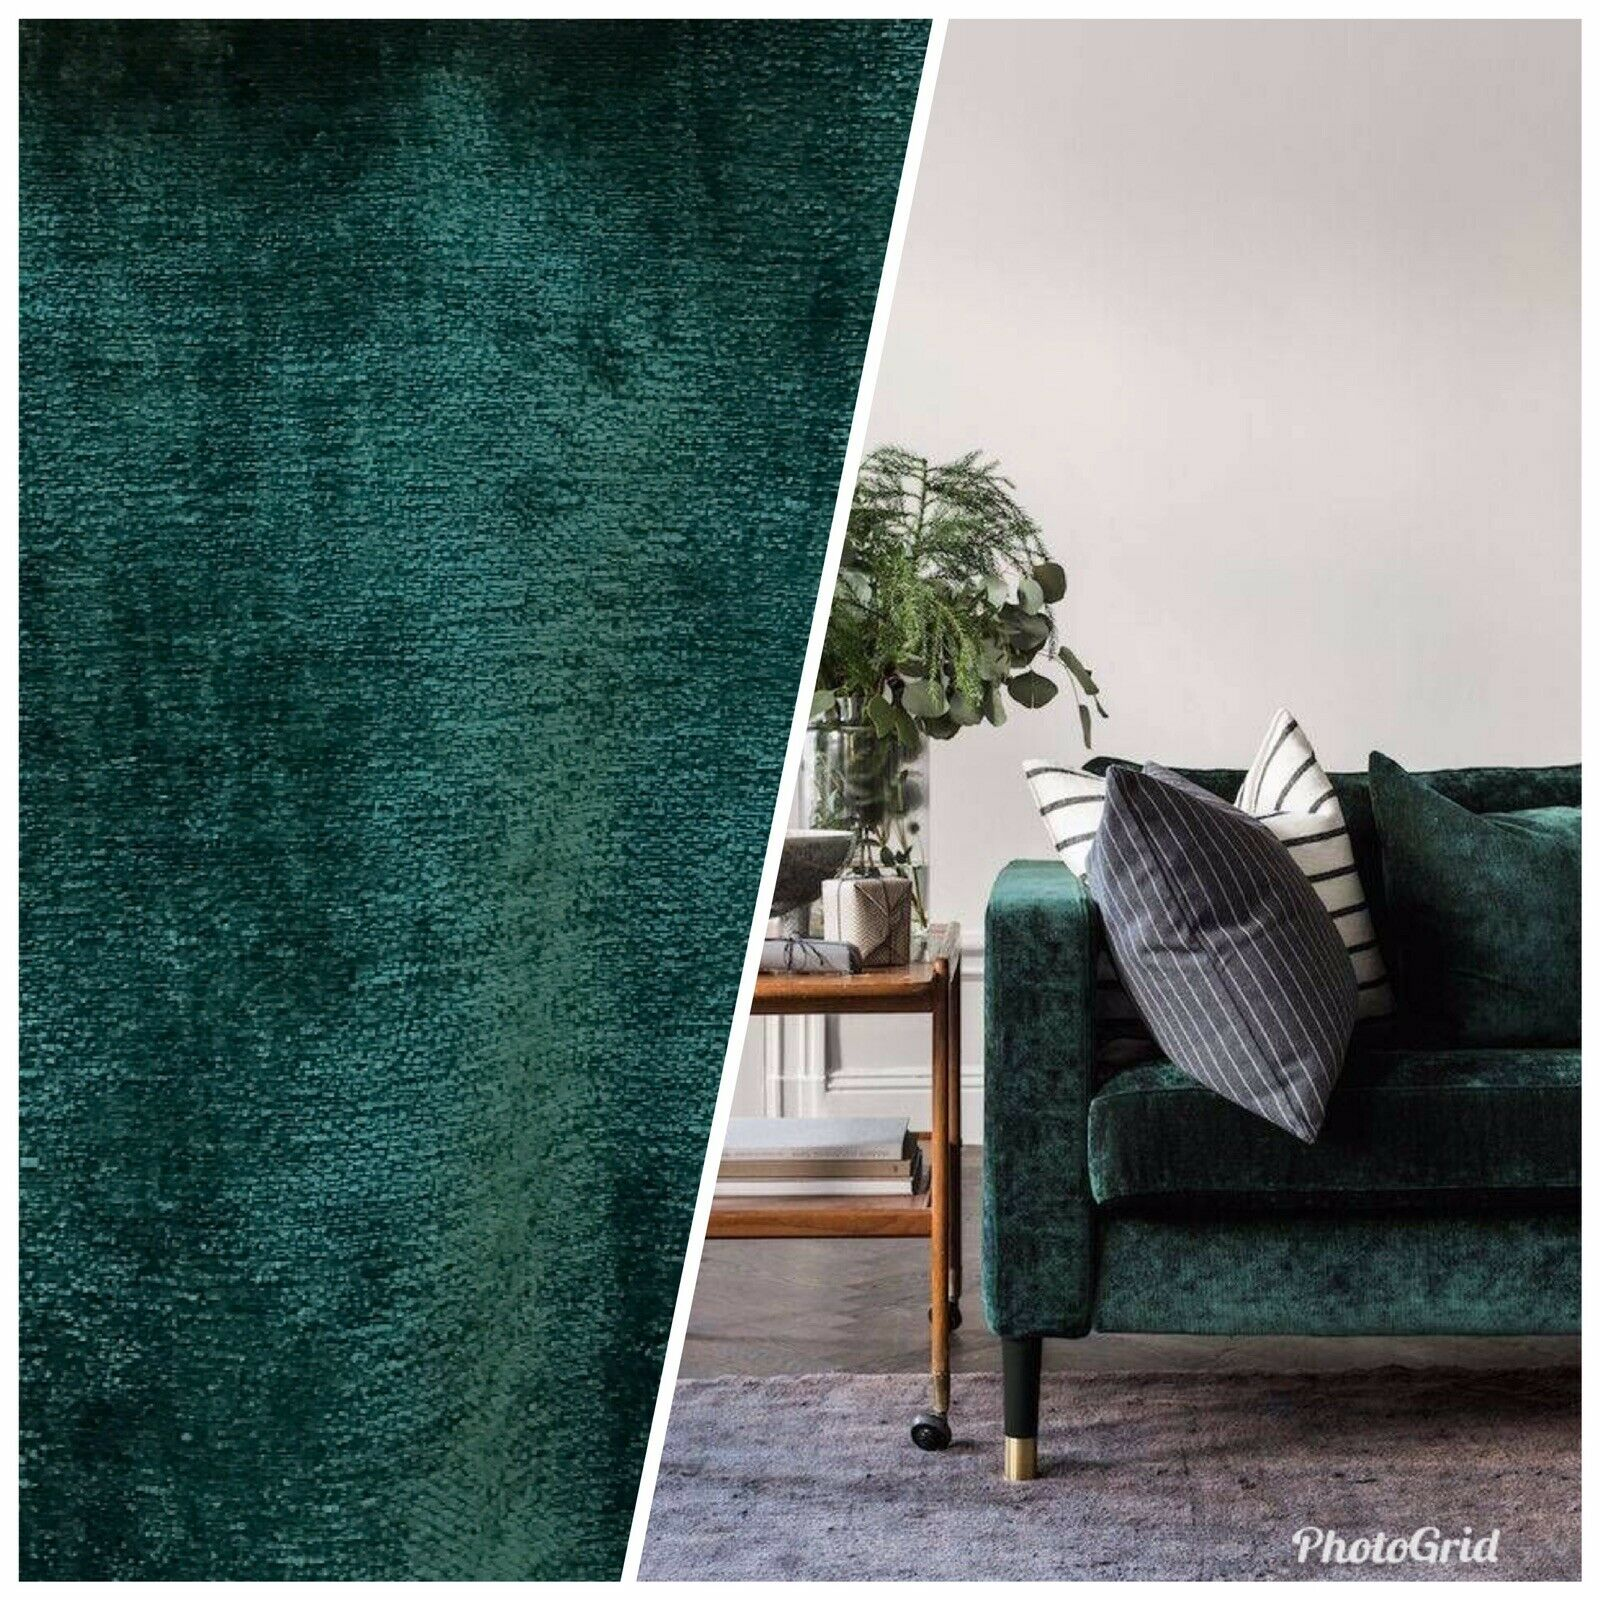 Designer Upholstery Thick And Soft Chenille Velvet Fabric - Emerald Green BTY